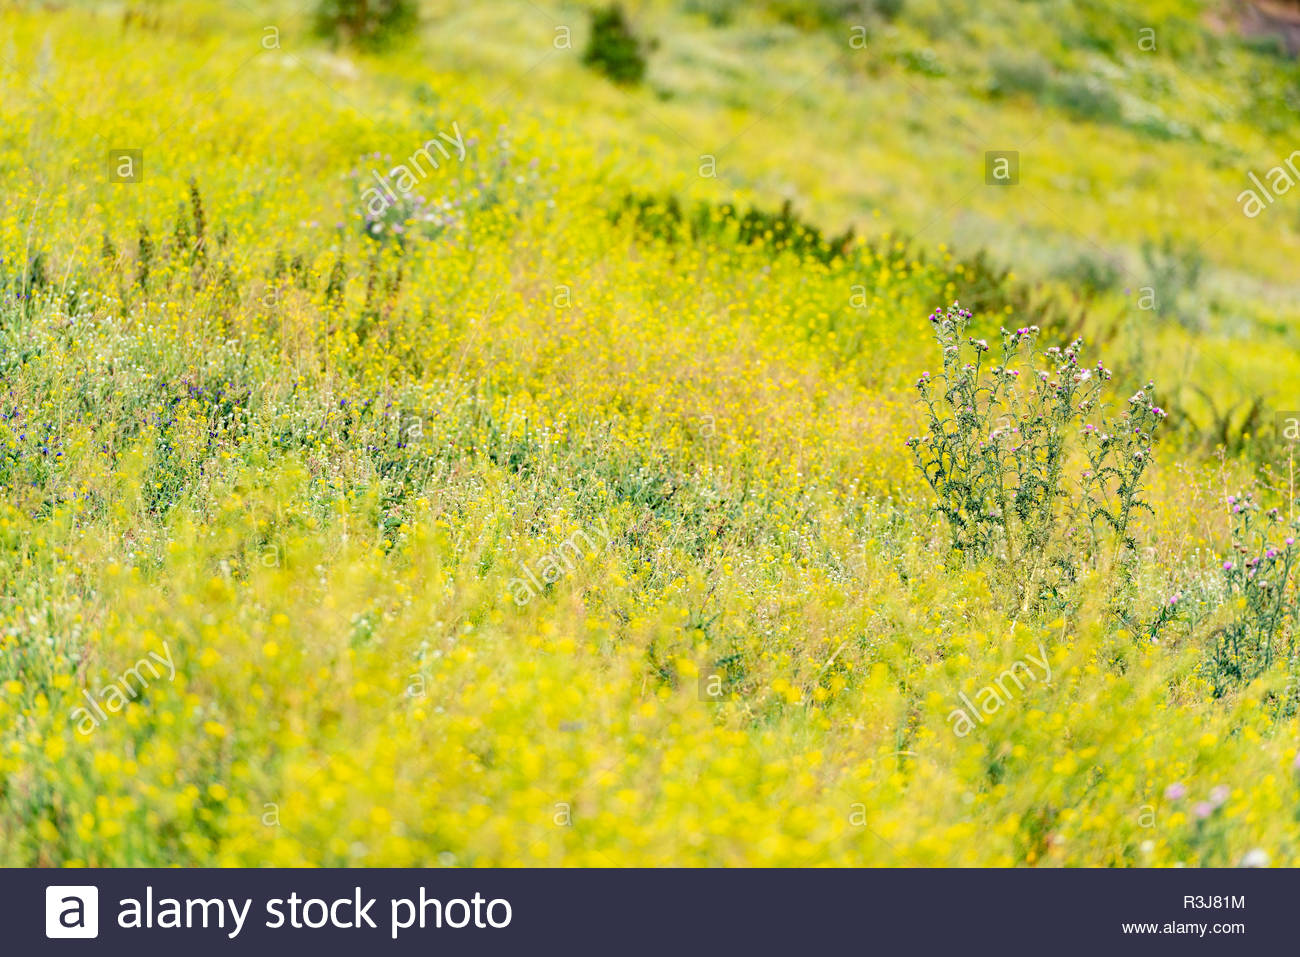 Wildwiese - Stock Image